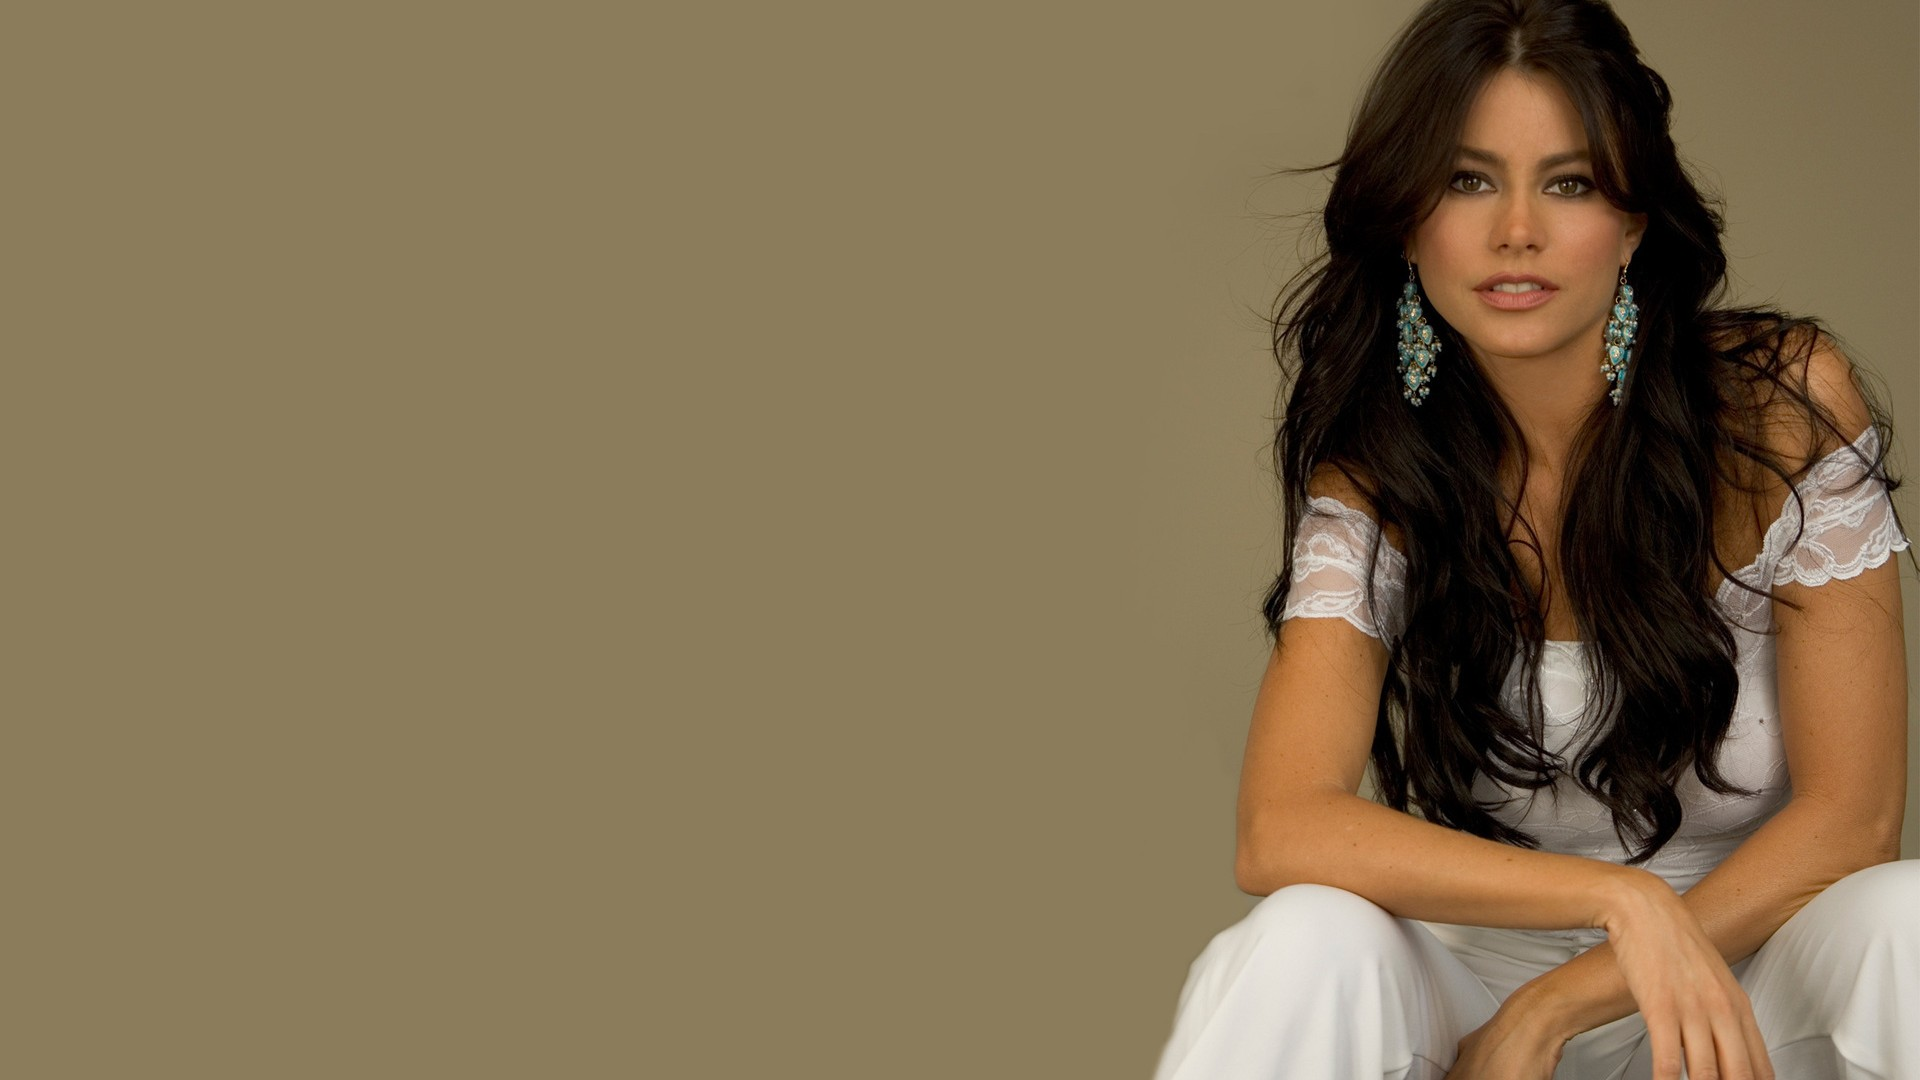 sofia vergara desktop wallpaper 54741